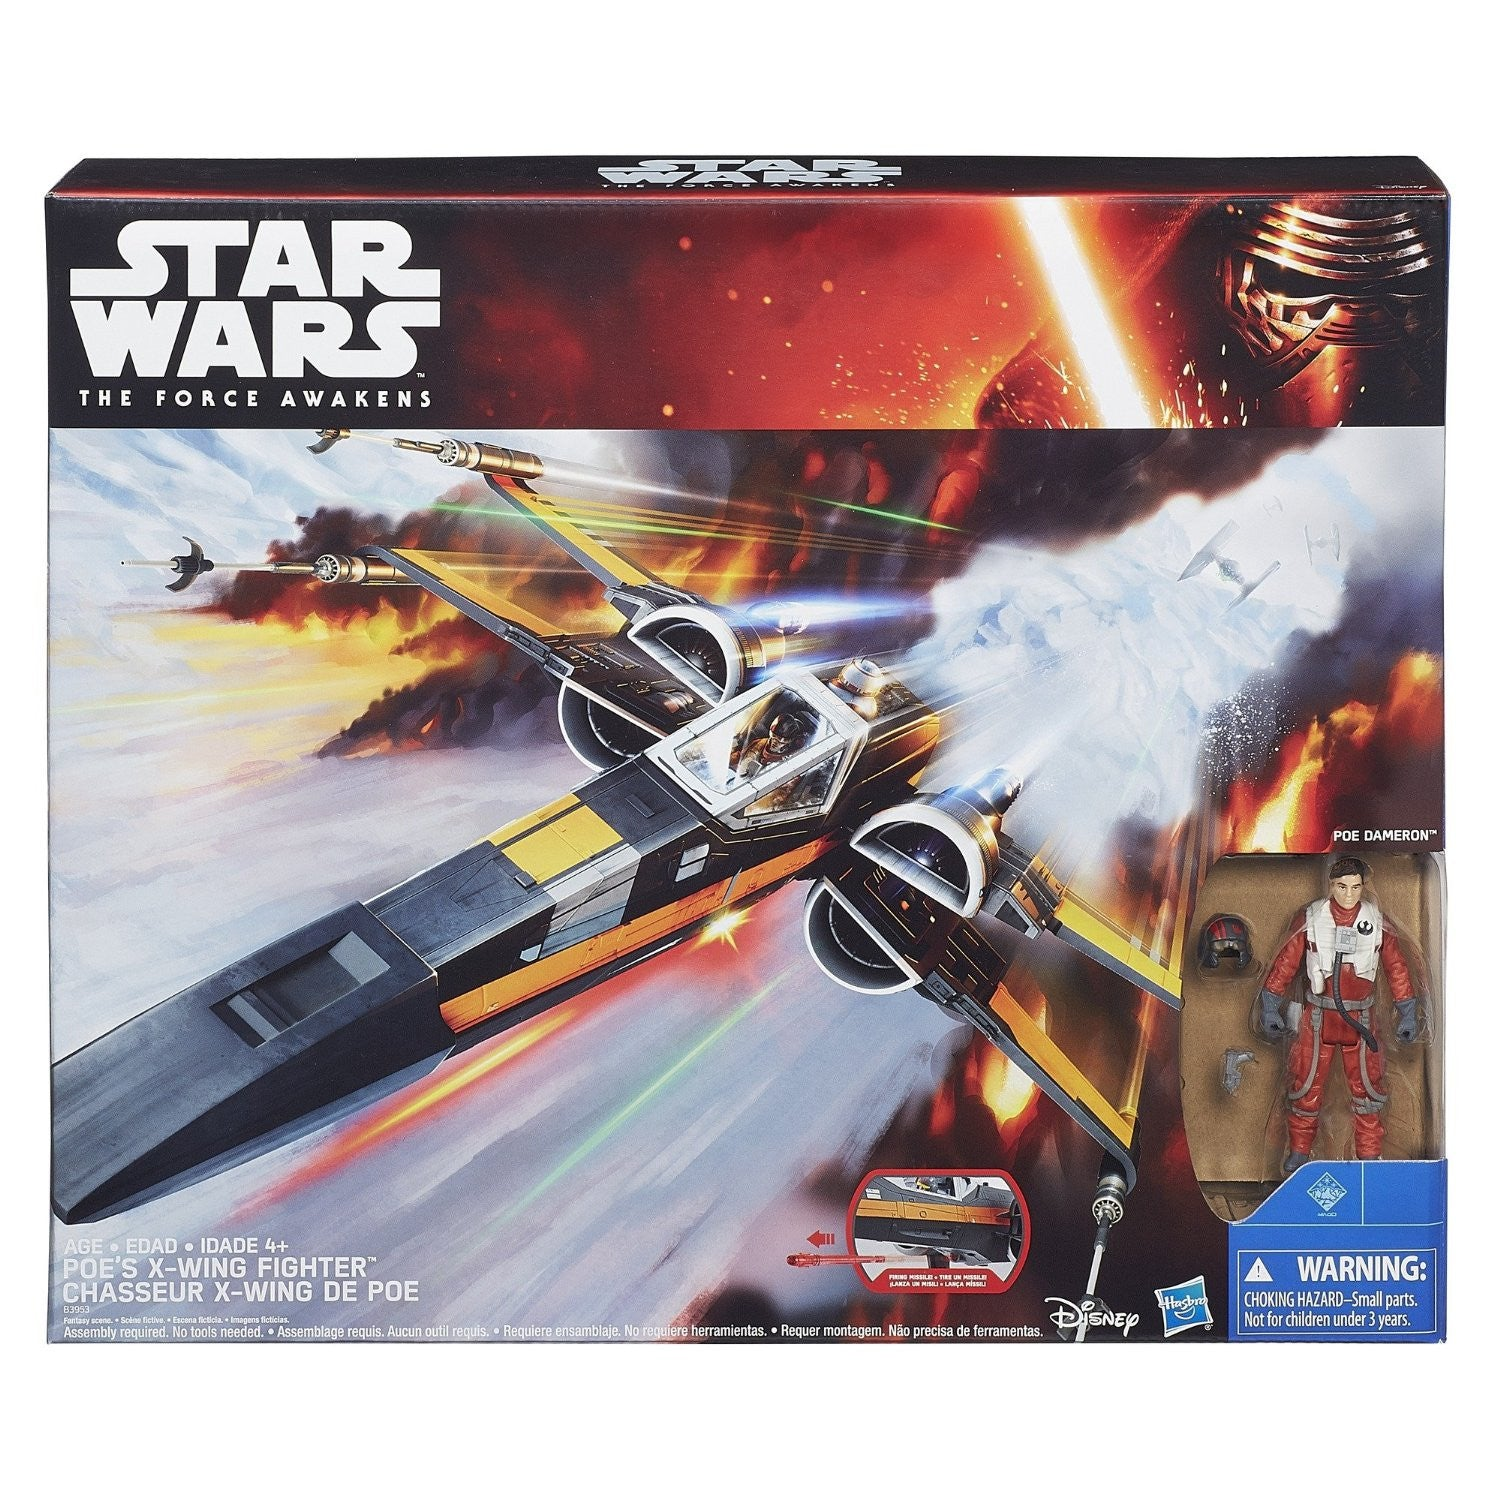 Star Wars Episode VII: The Force Awakens 3.75in Vehicle Poe Dameron's X-Wing